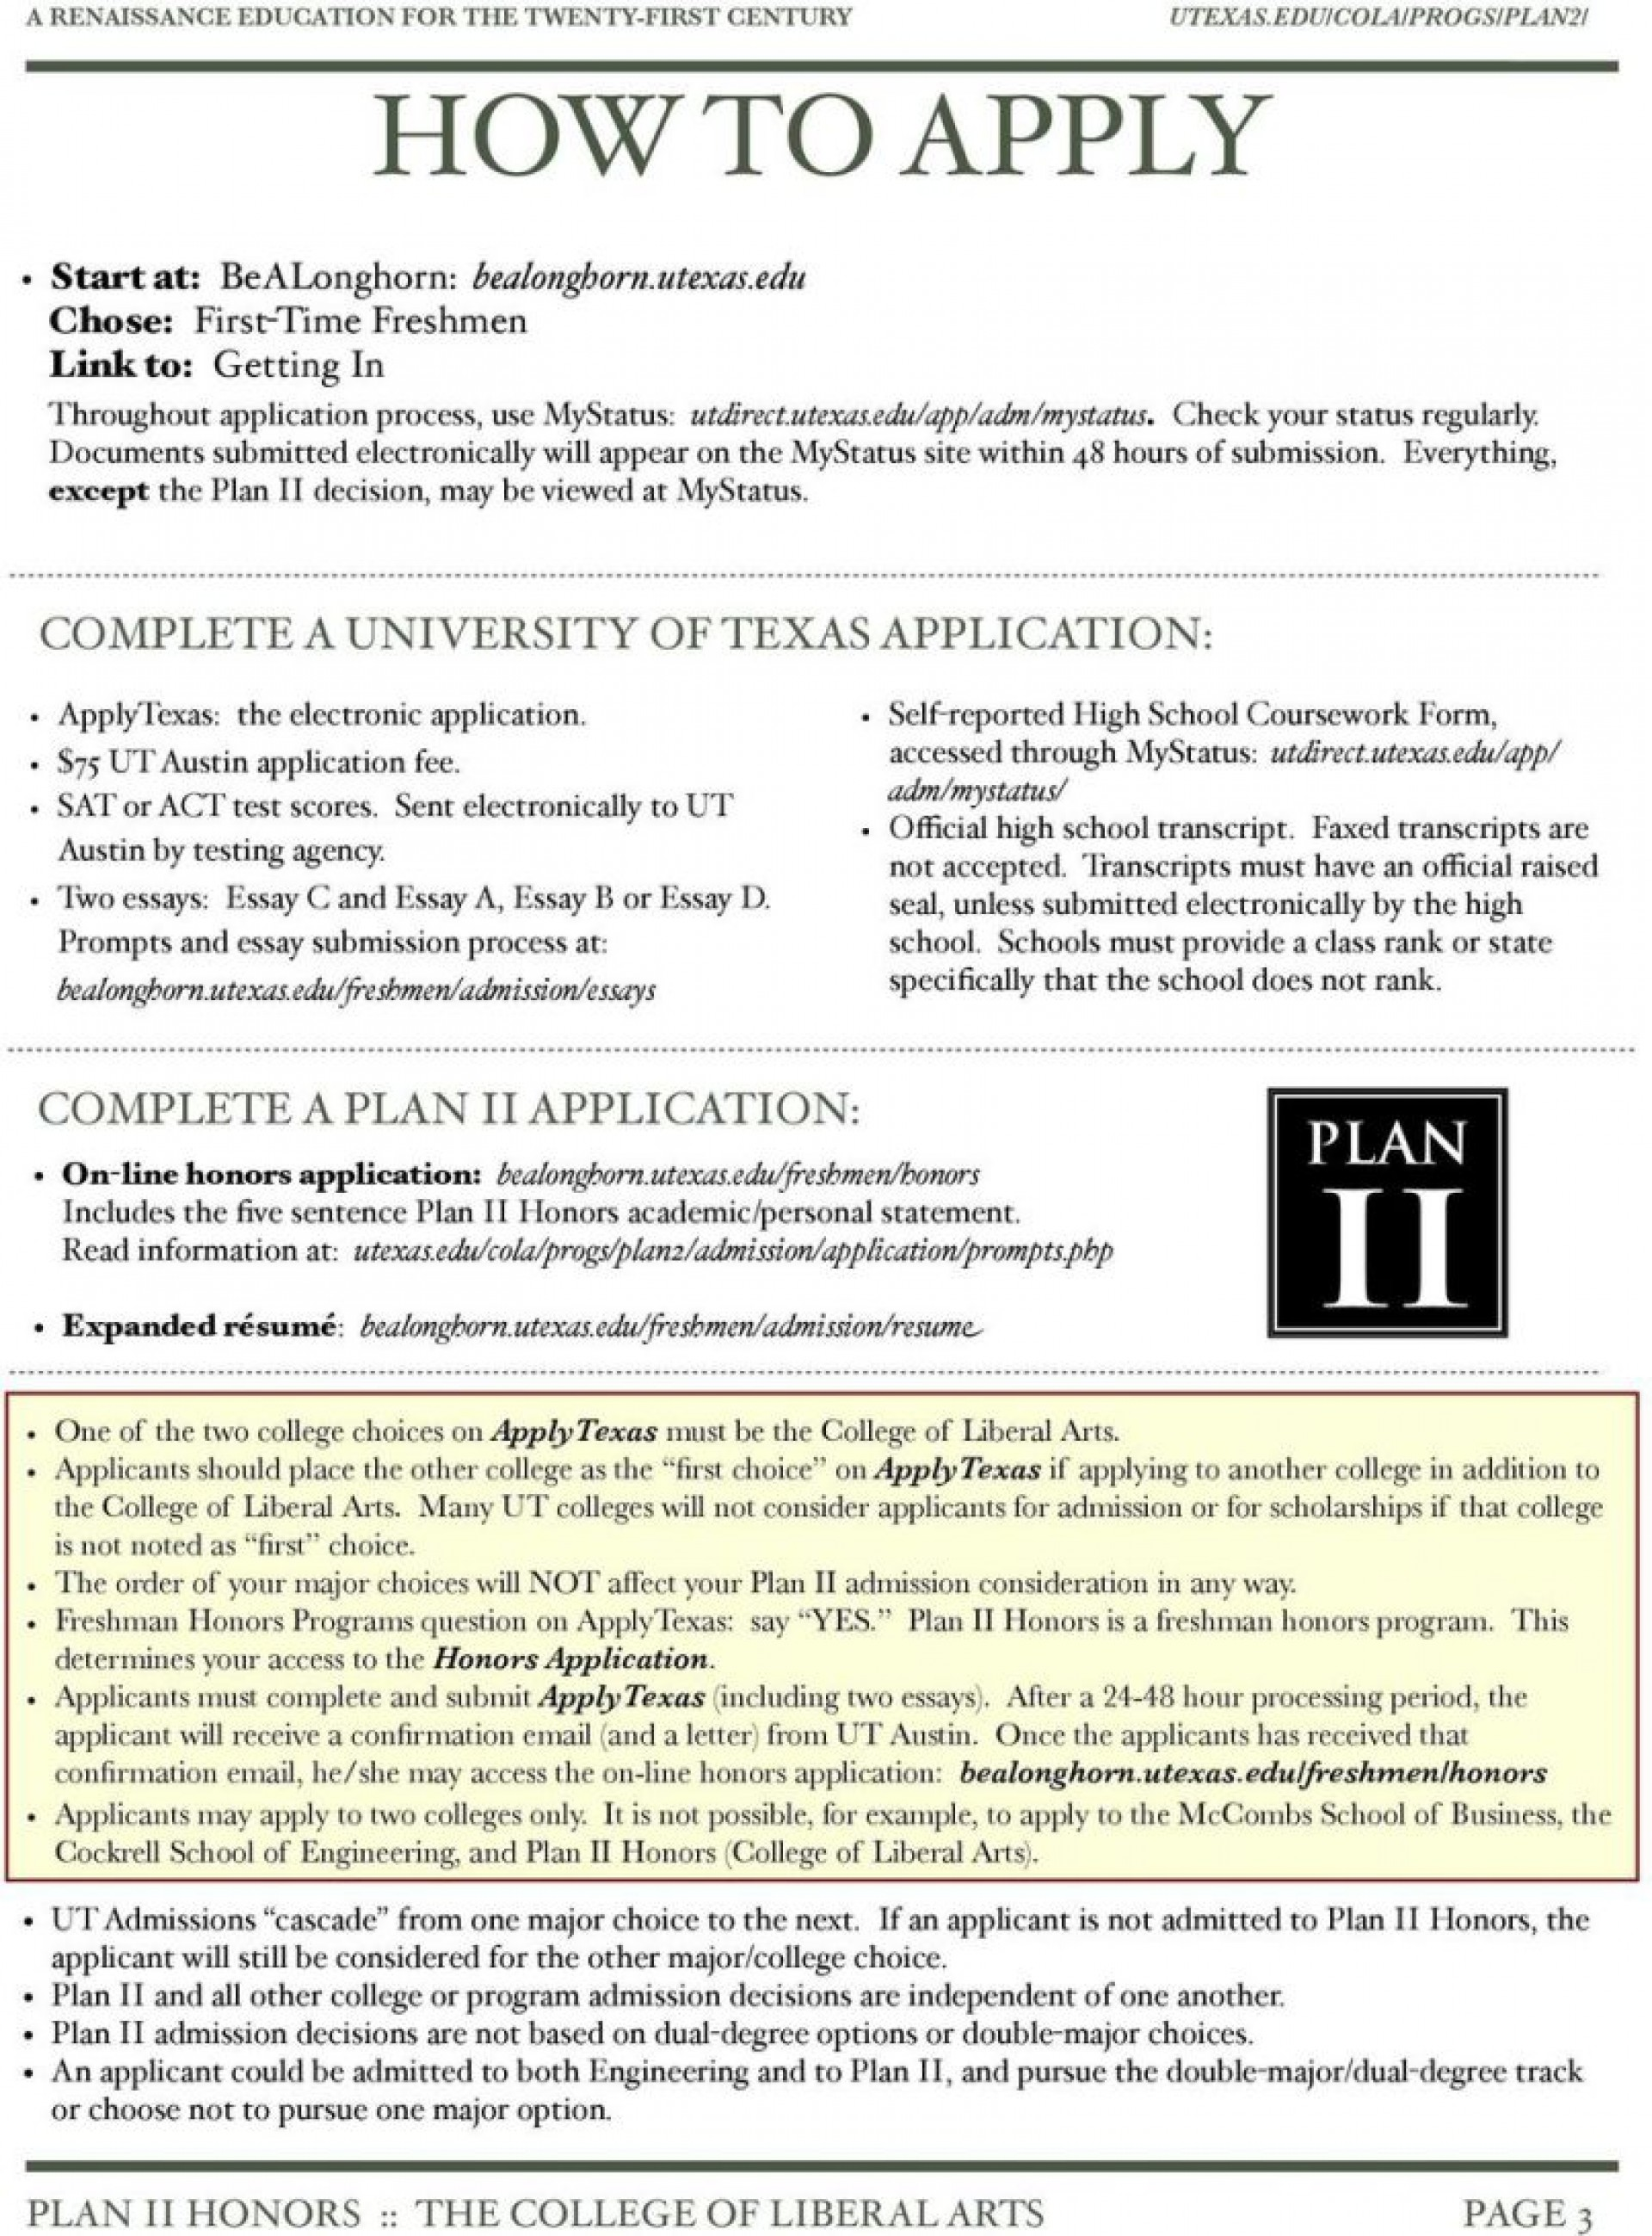 005 Applytexas Essay Prompts Poemdoc Or Apply Texas Topics P Fearsome Word Limit 2017 Ut Austin 1920